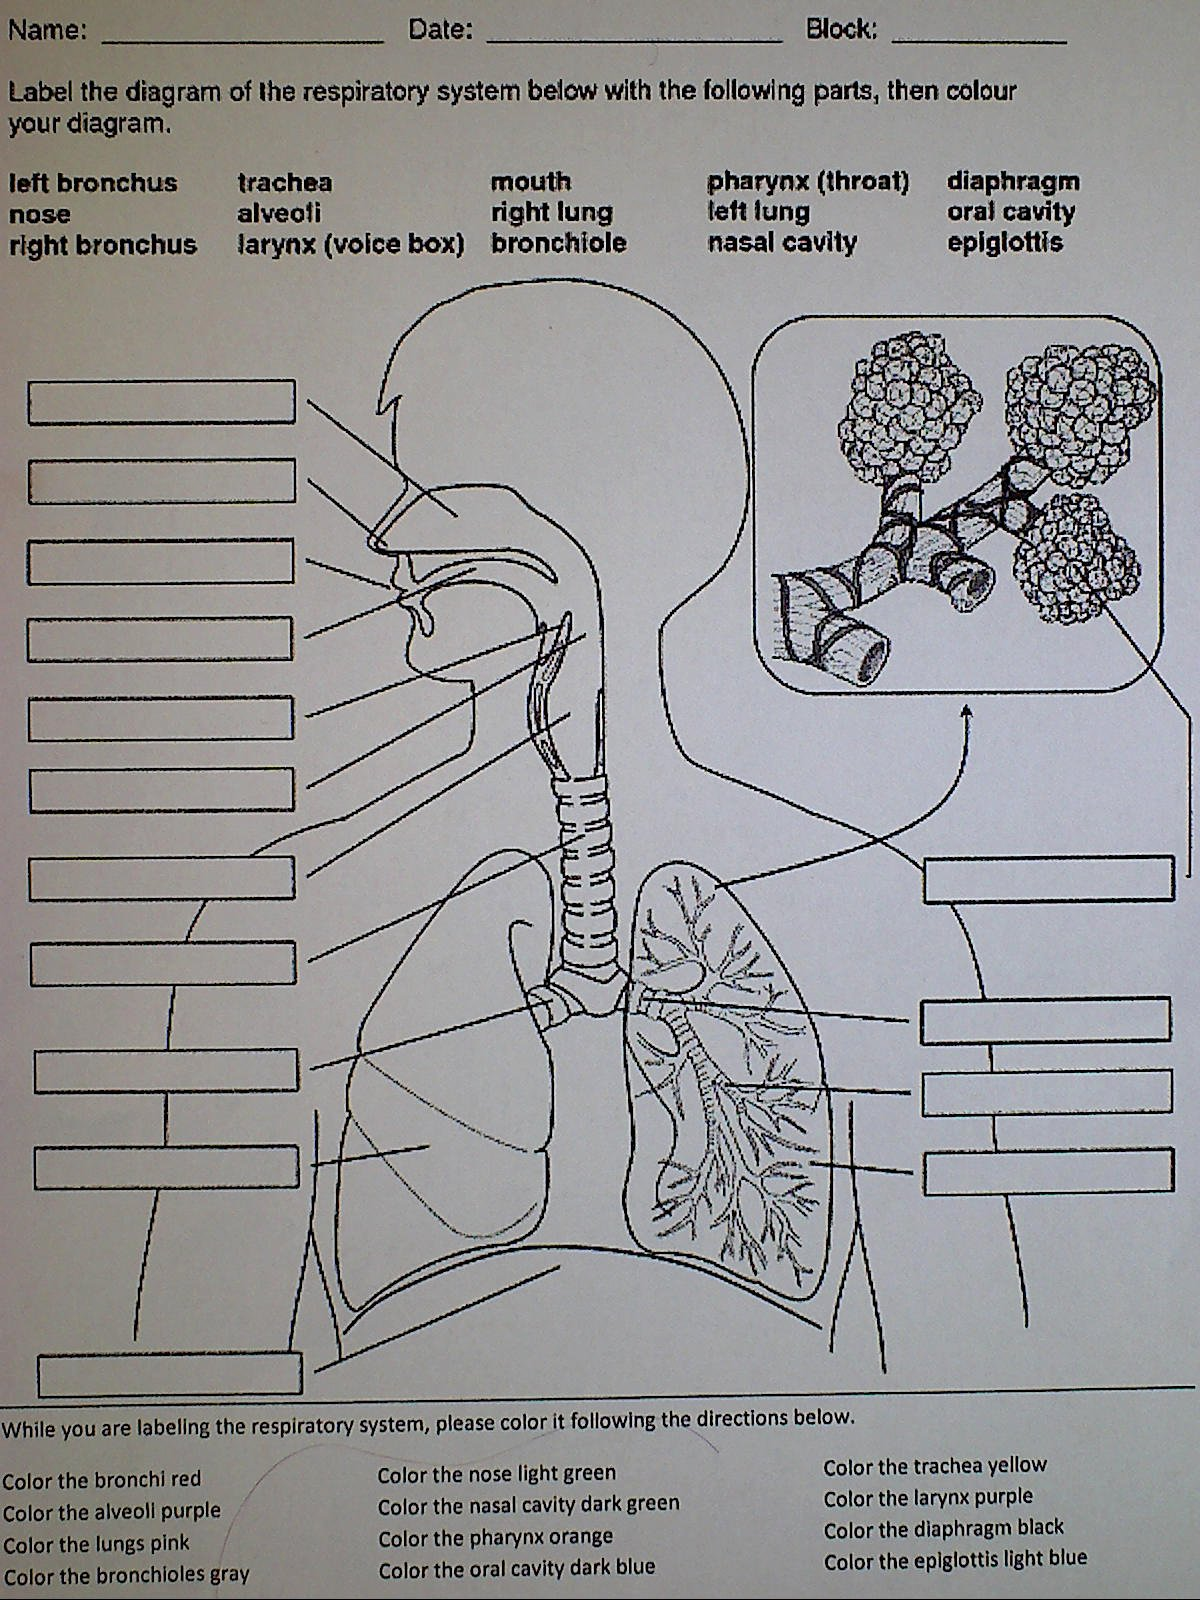 Respiratory System Worksheet Answer Key Luxury Respiratory System Ms Palmer S Science Class